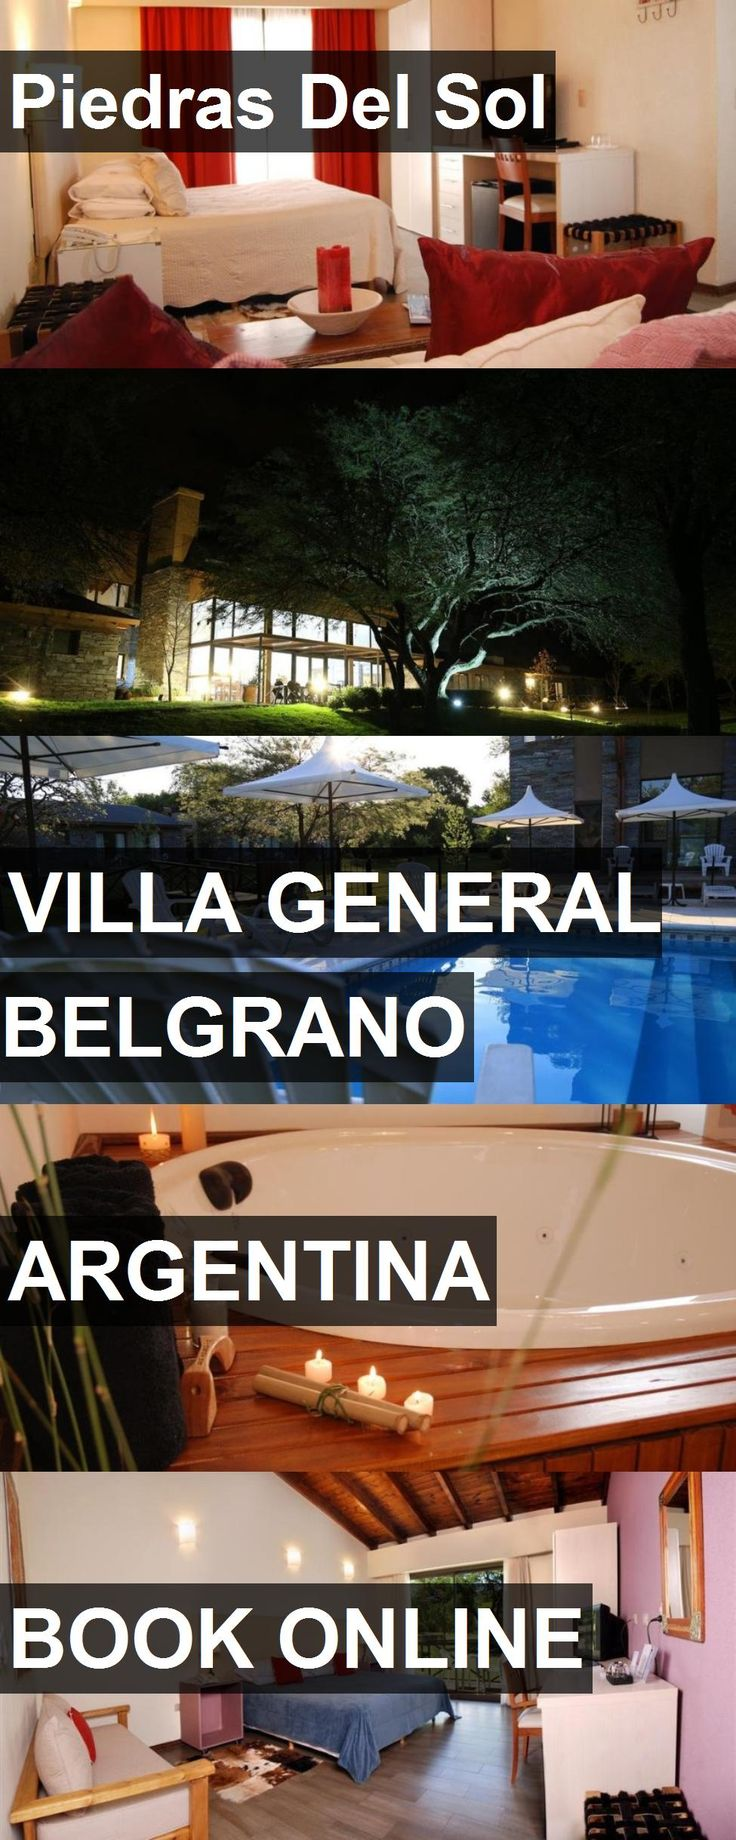 Hotel Piedras Del Sol in Villa General Belgrano, Argentina. For more information, photos, reviews and best prices please follow the link. #Argentina #VillaGeneralBelgrano #travel #vacation #hotel